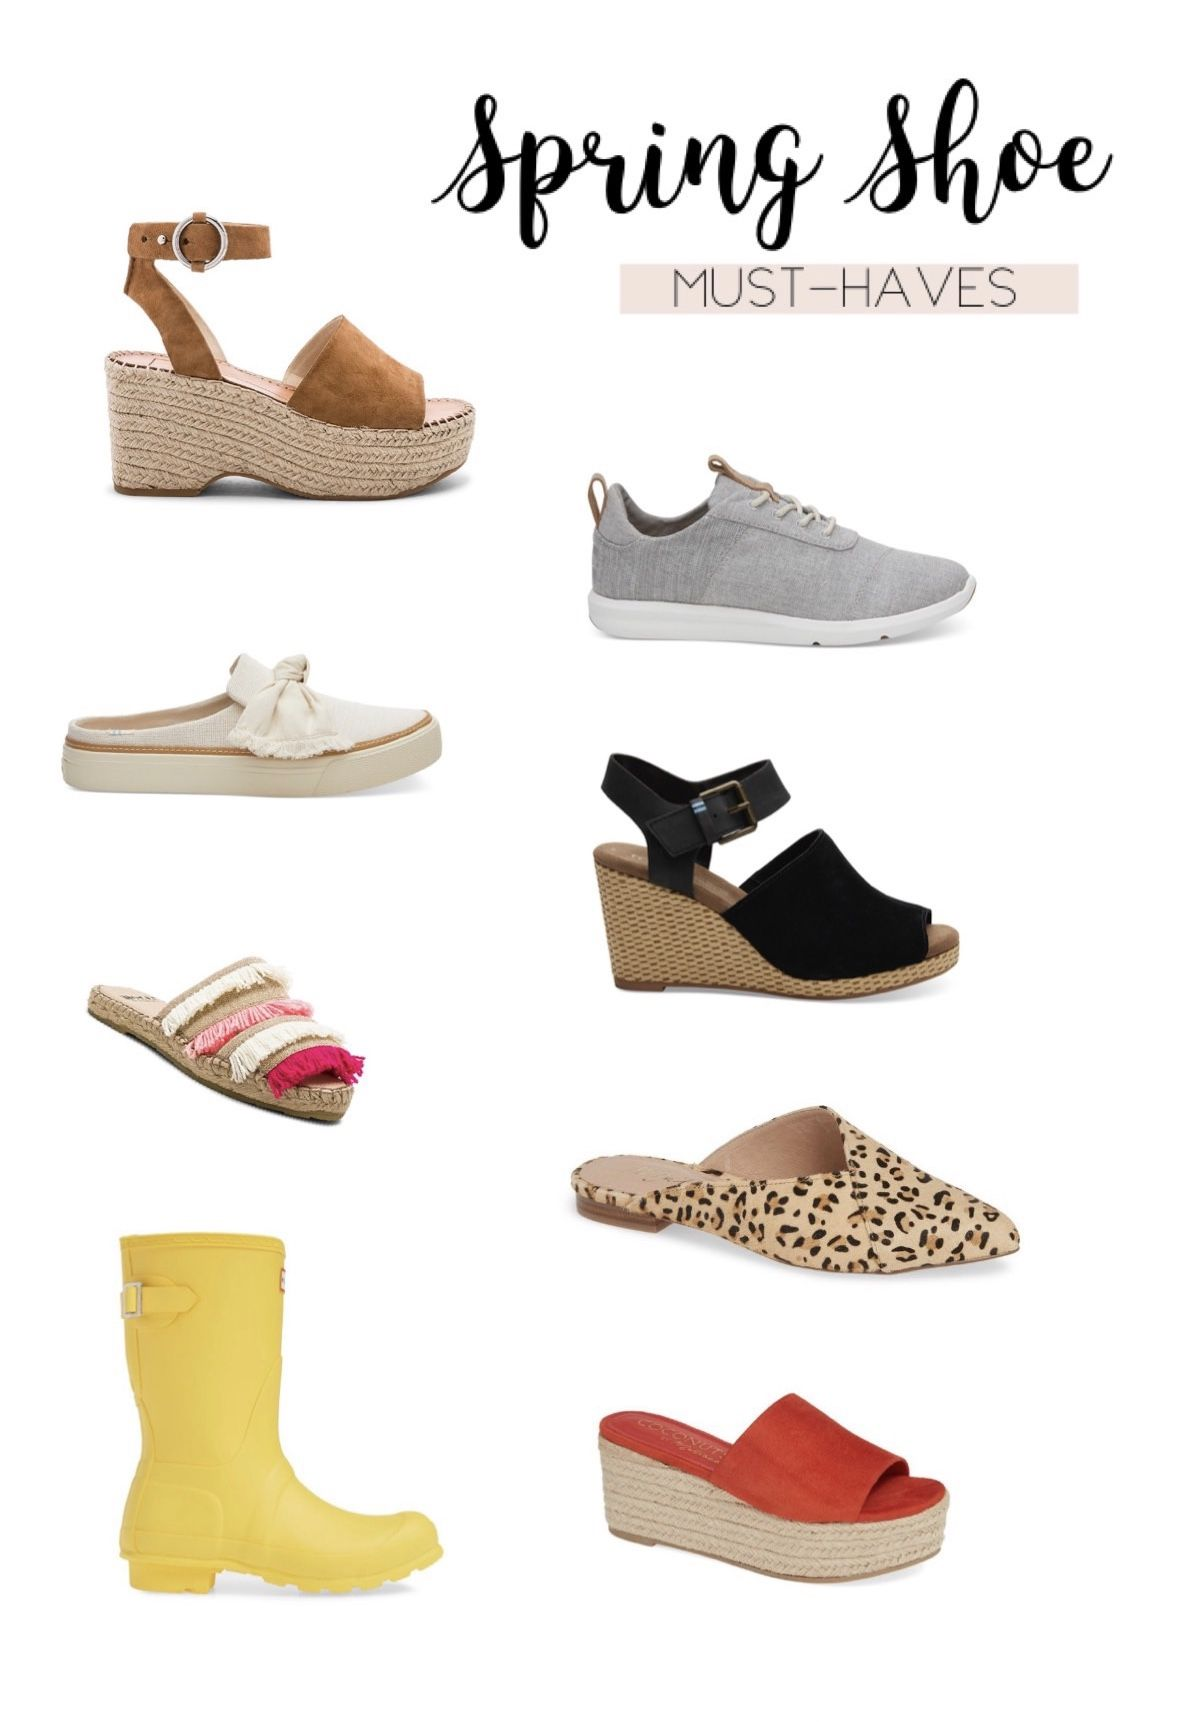 Spring 2019 Shoe Must-Haves - Kiteen's